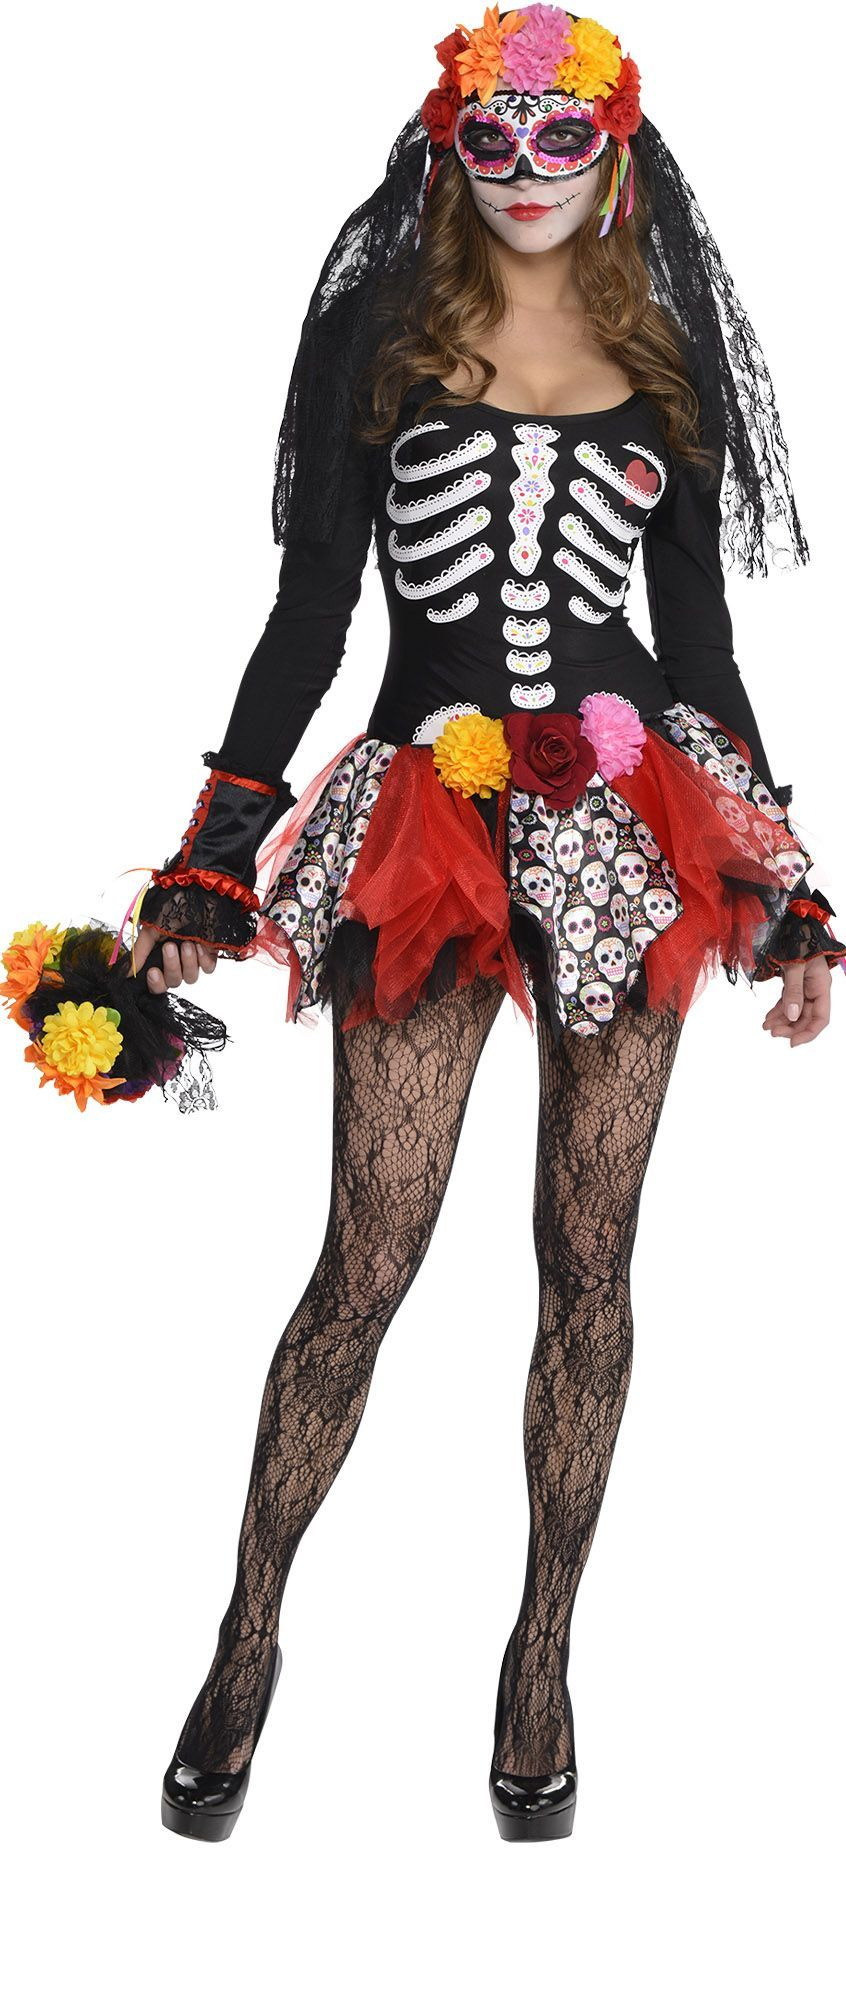 Create Your Own Look Female Day of the Dead 1 Gothic